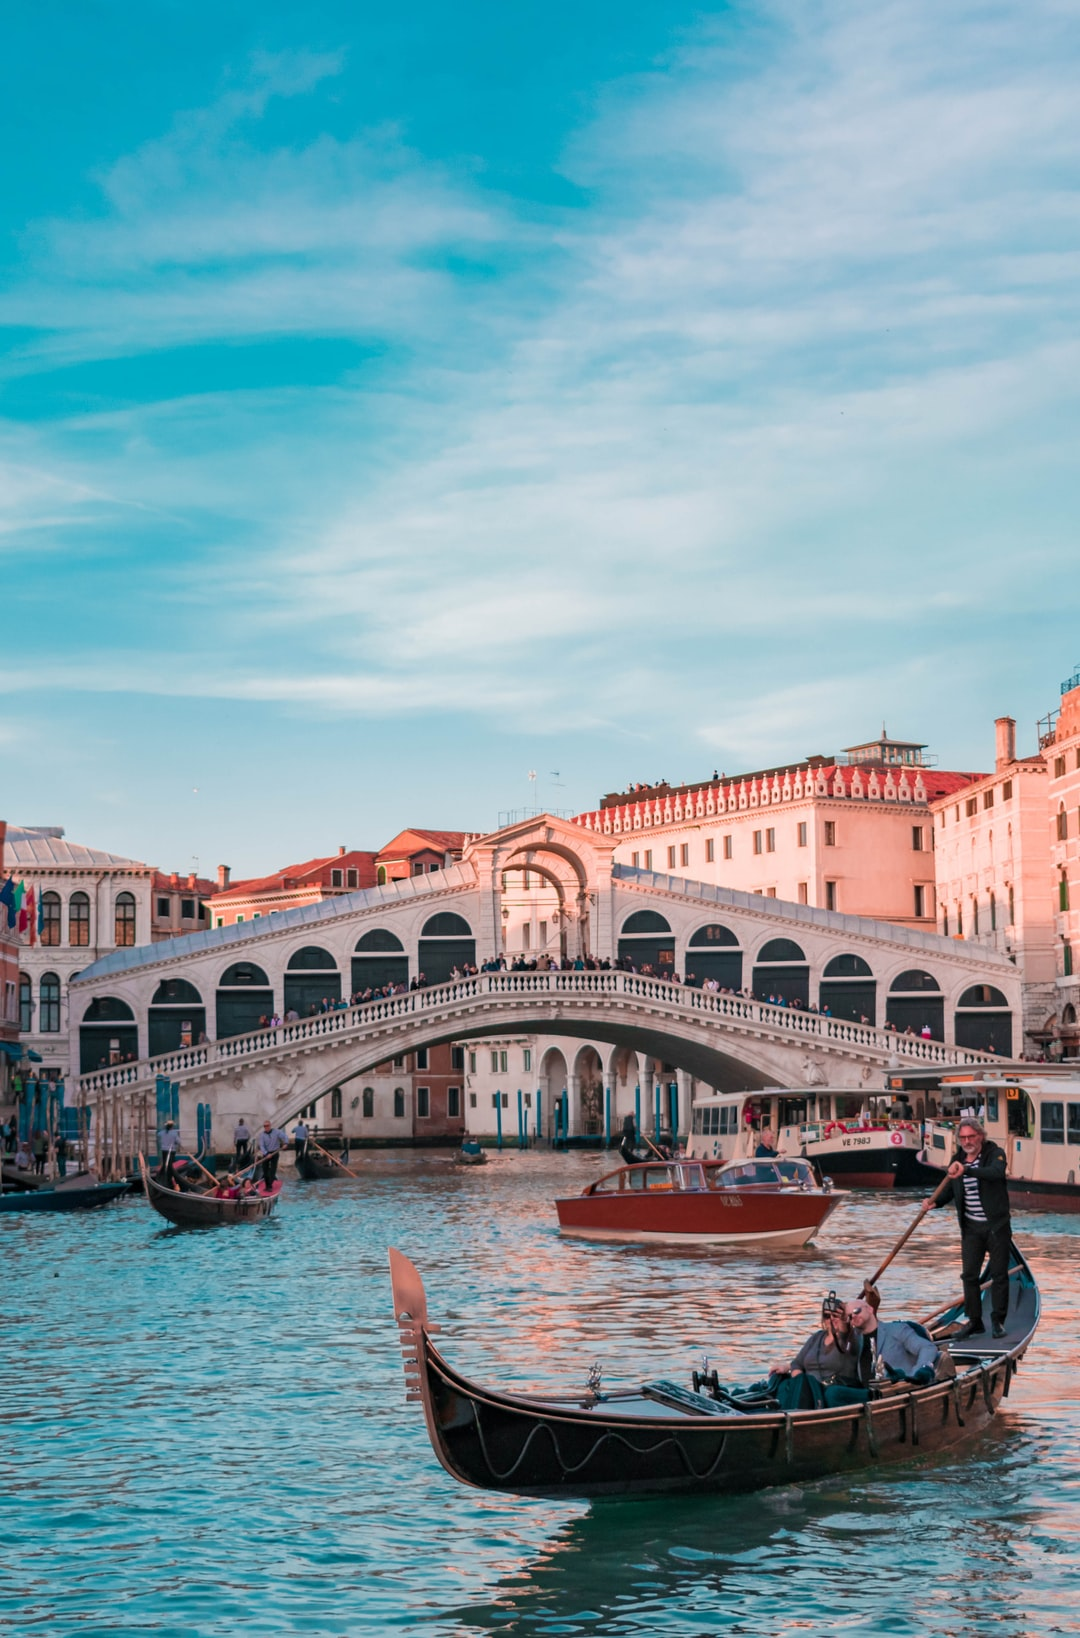 100 Venice Pictures [Scenic Travel Photos] Download Images 1080x1638